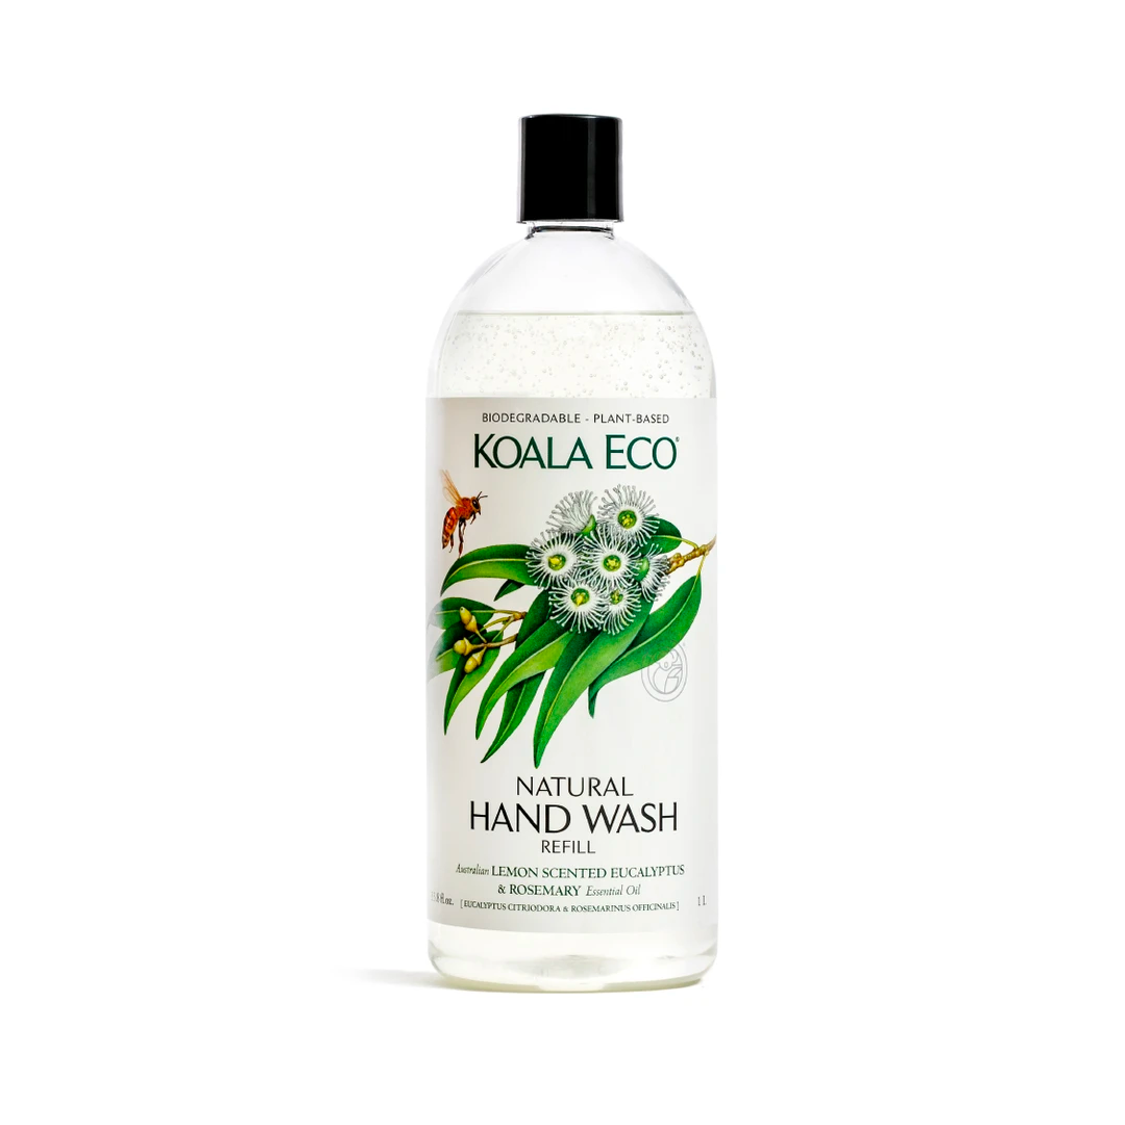 Koala Eco Natural Hand Wash (Refill)